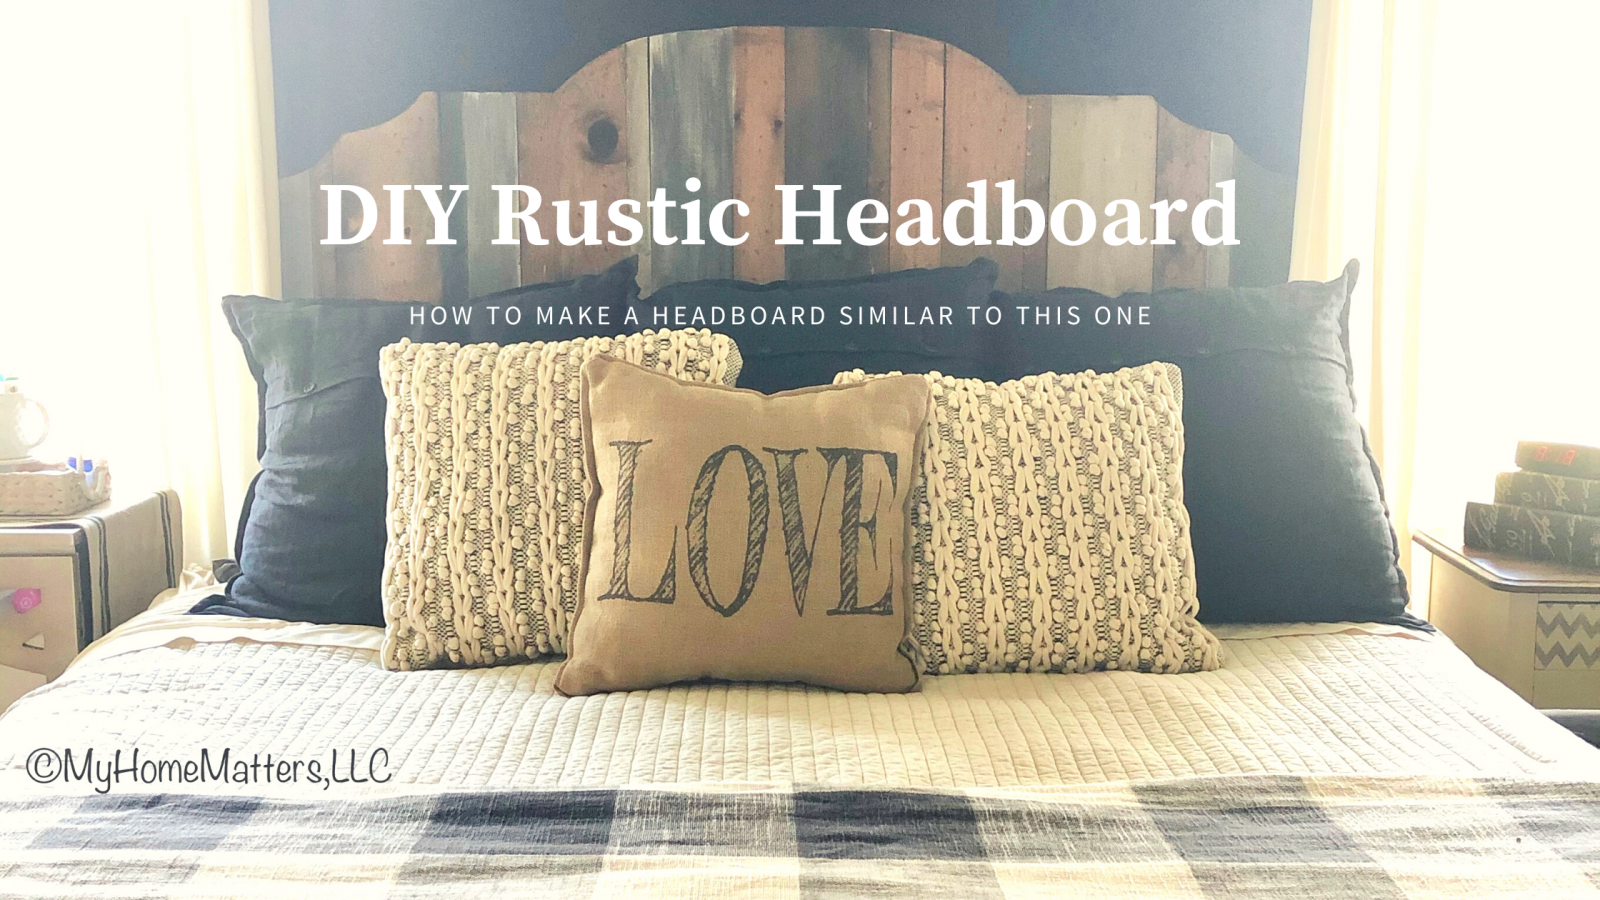 Planked Wooden Headboard in front of a black accent wall